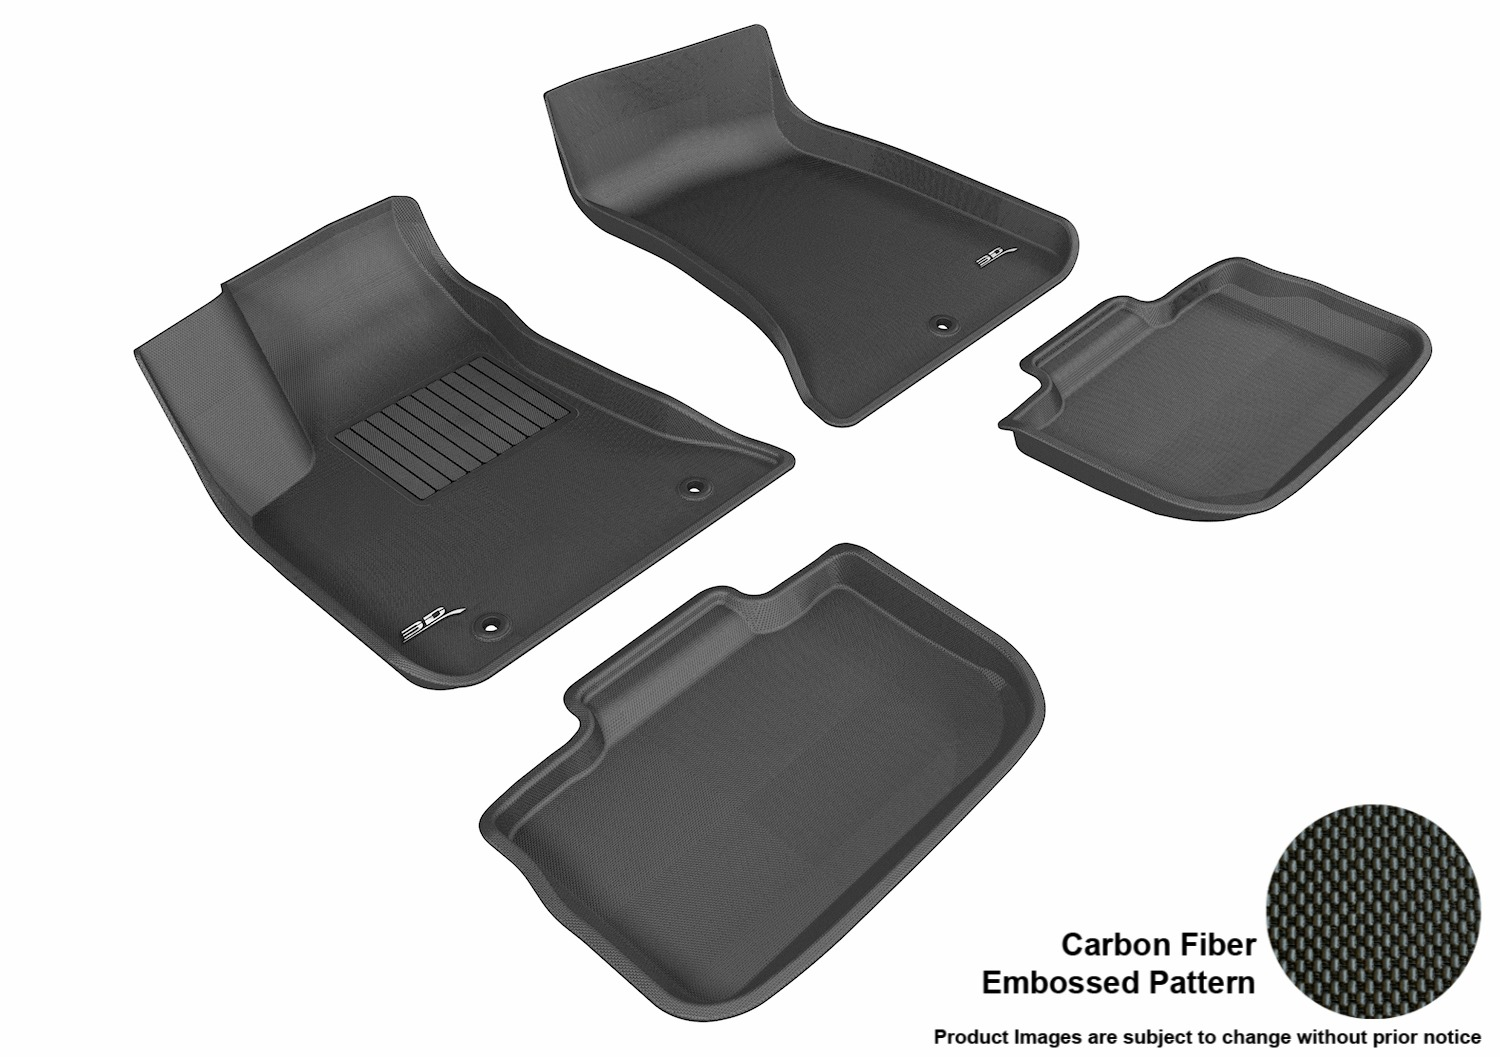 2011 2019 Dodge Charger 3d Maxpider Floor Mats Fast Free Shipping